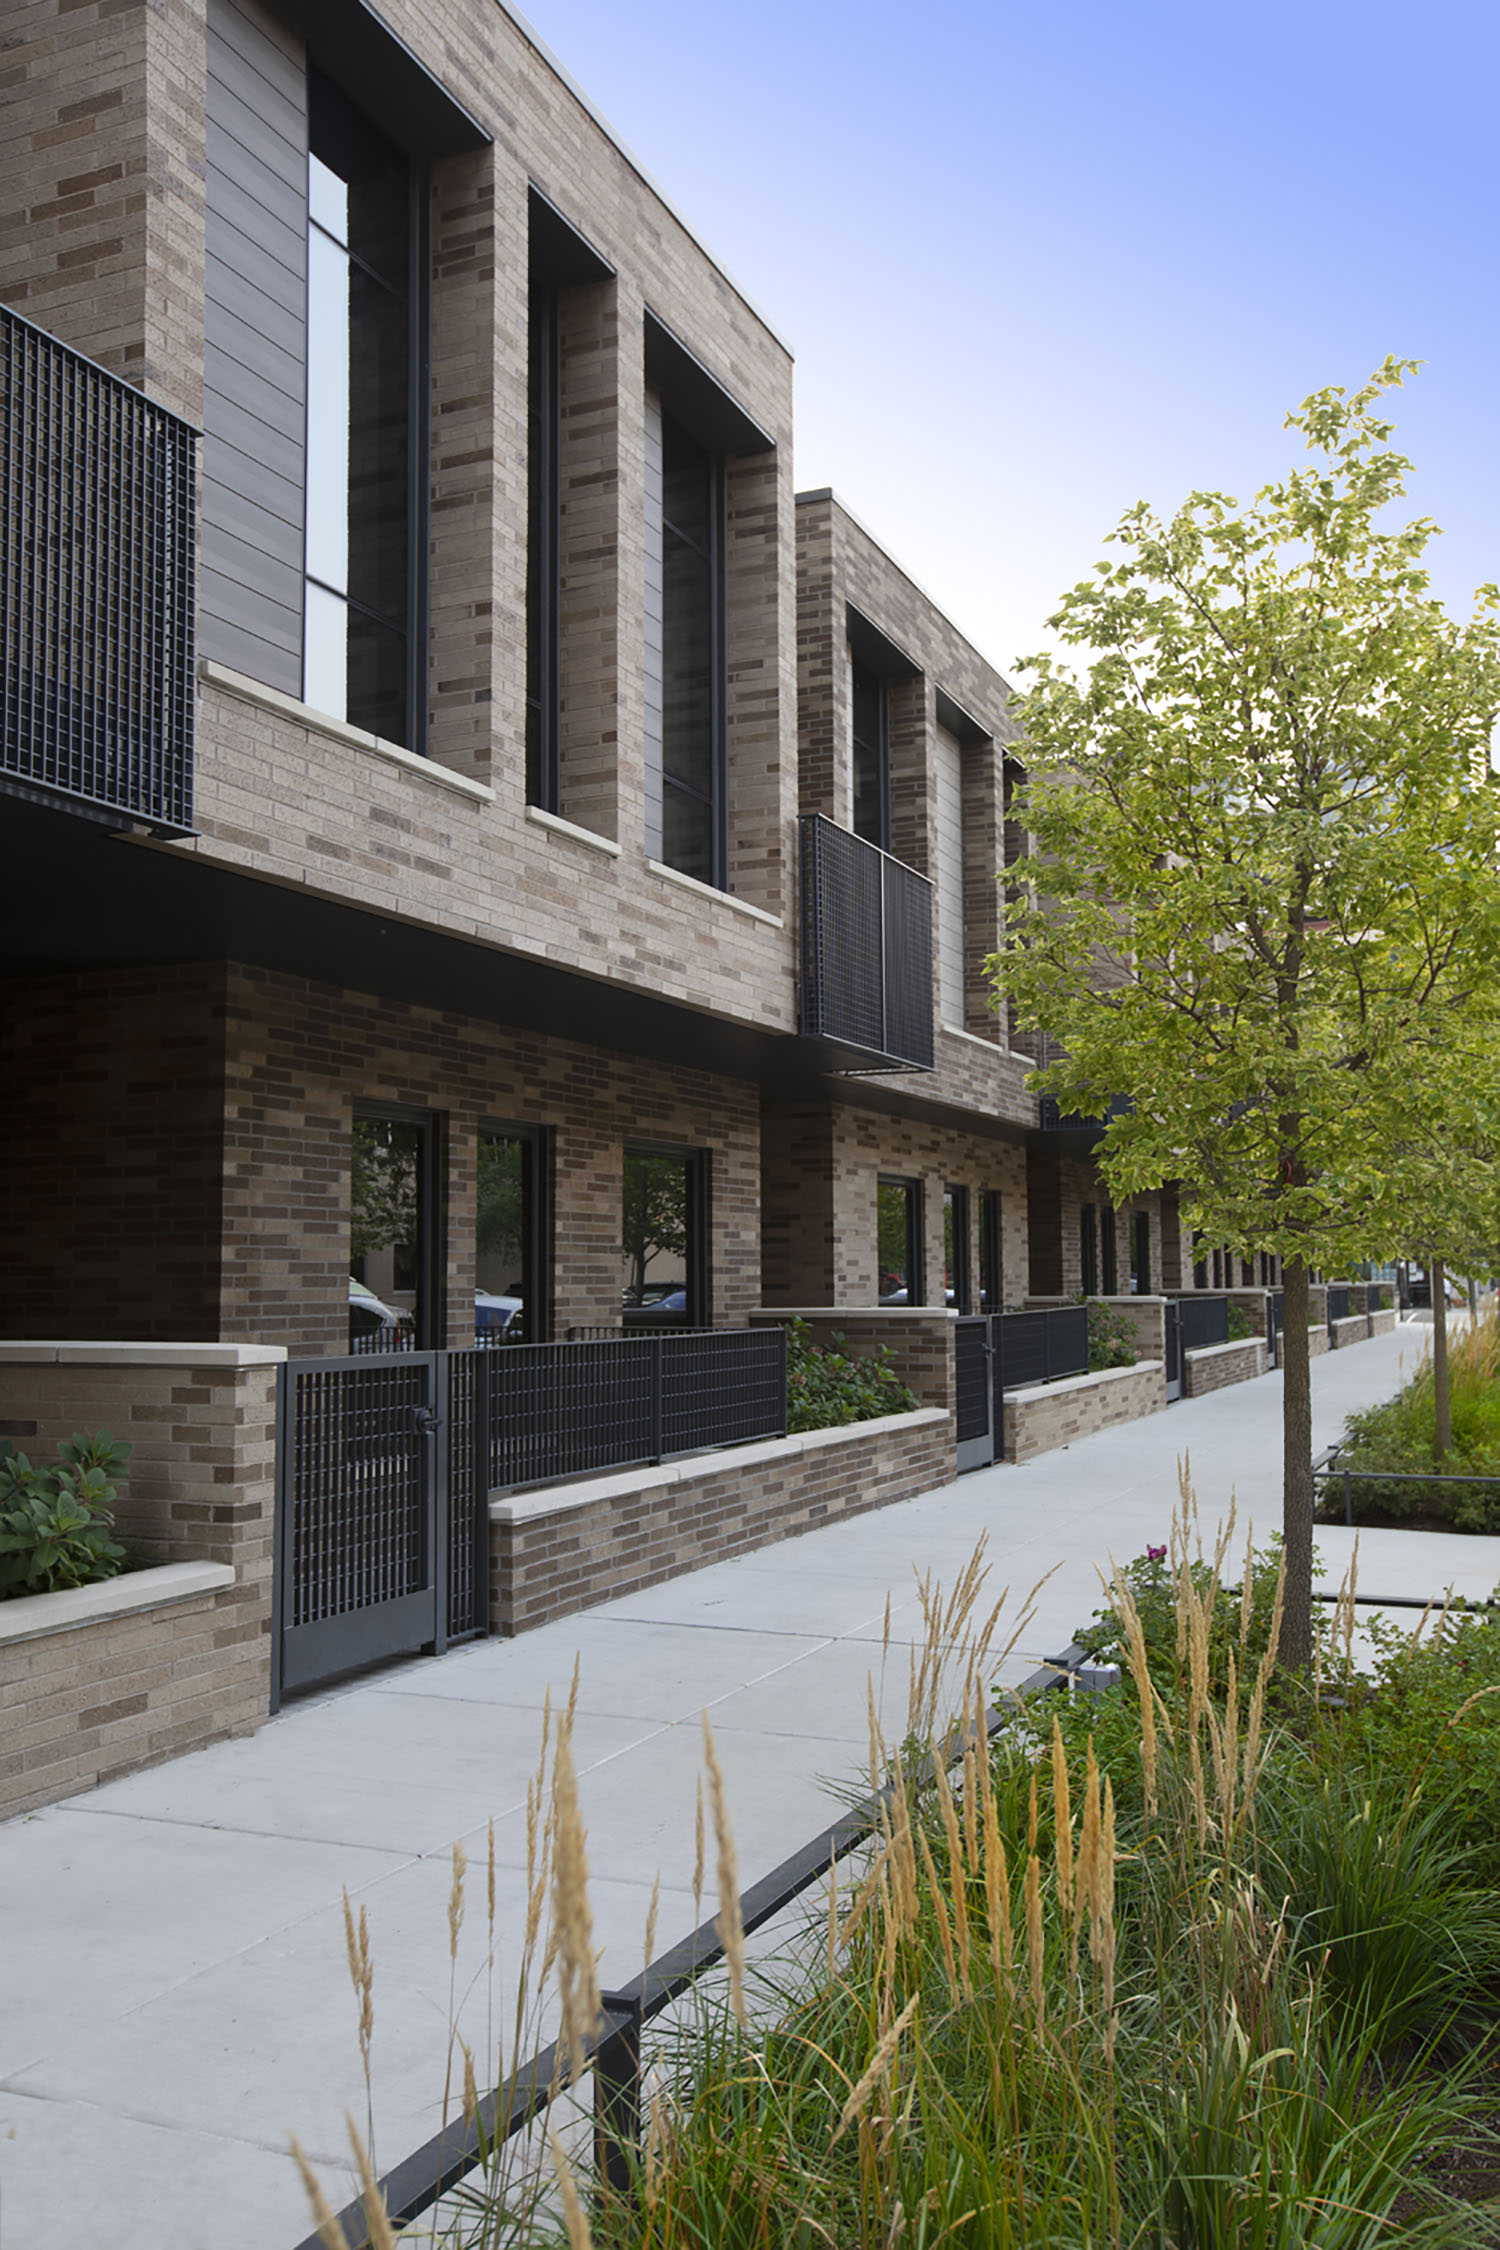 Townhome Exterior. Image by Lendlease and The John Buck Company